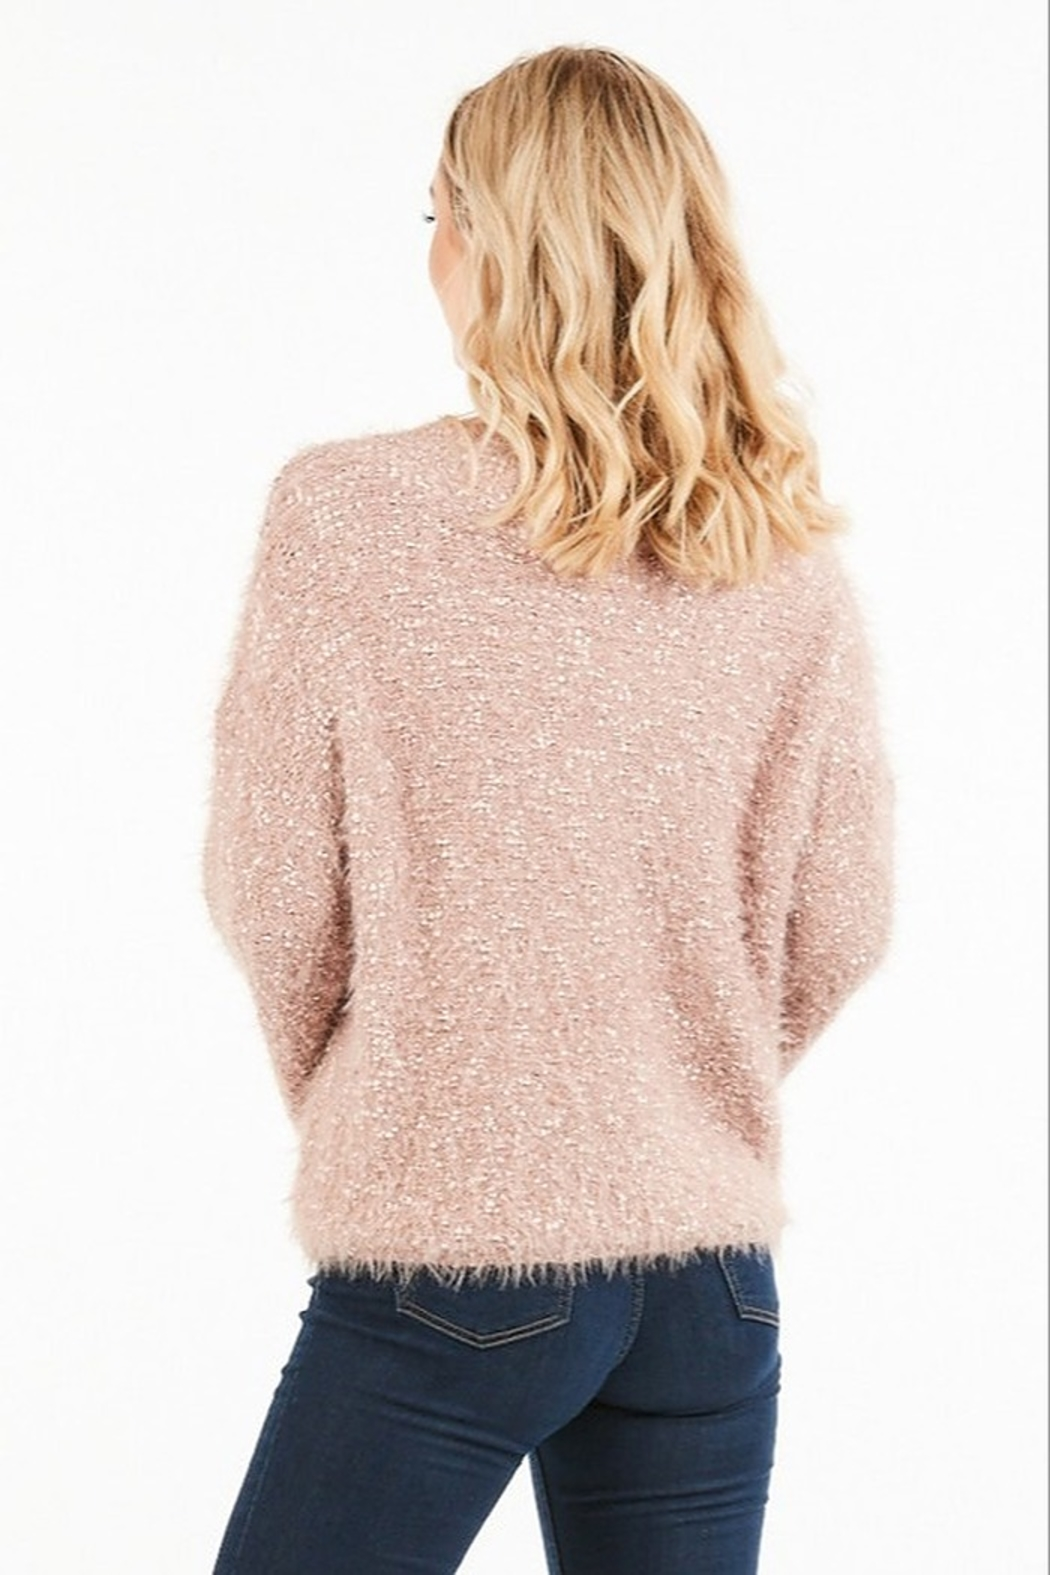 Very J  Fuzzy Knit Sweater - Front Full Image